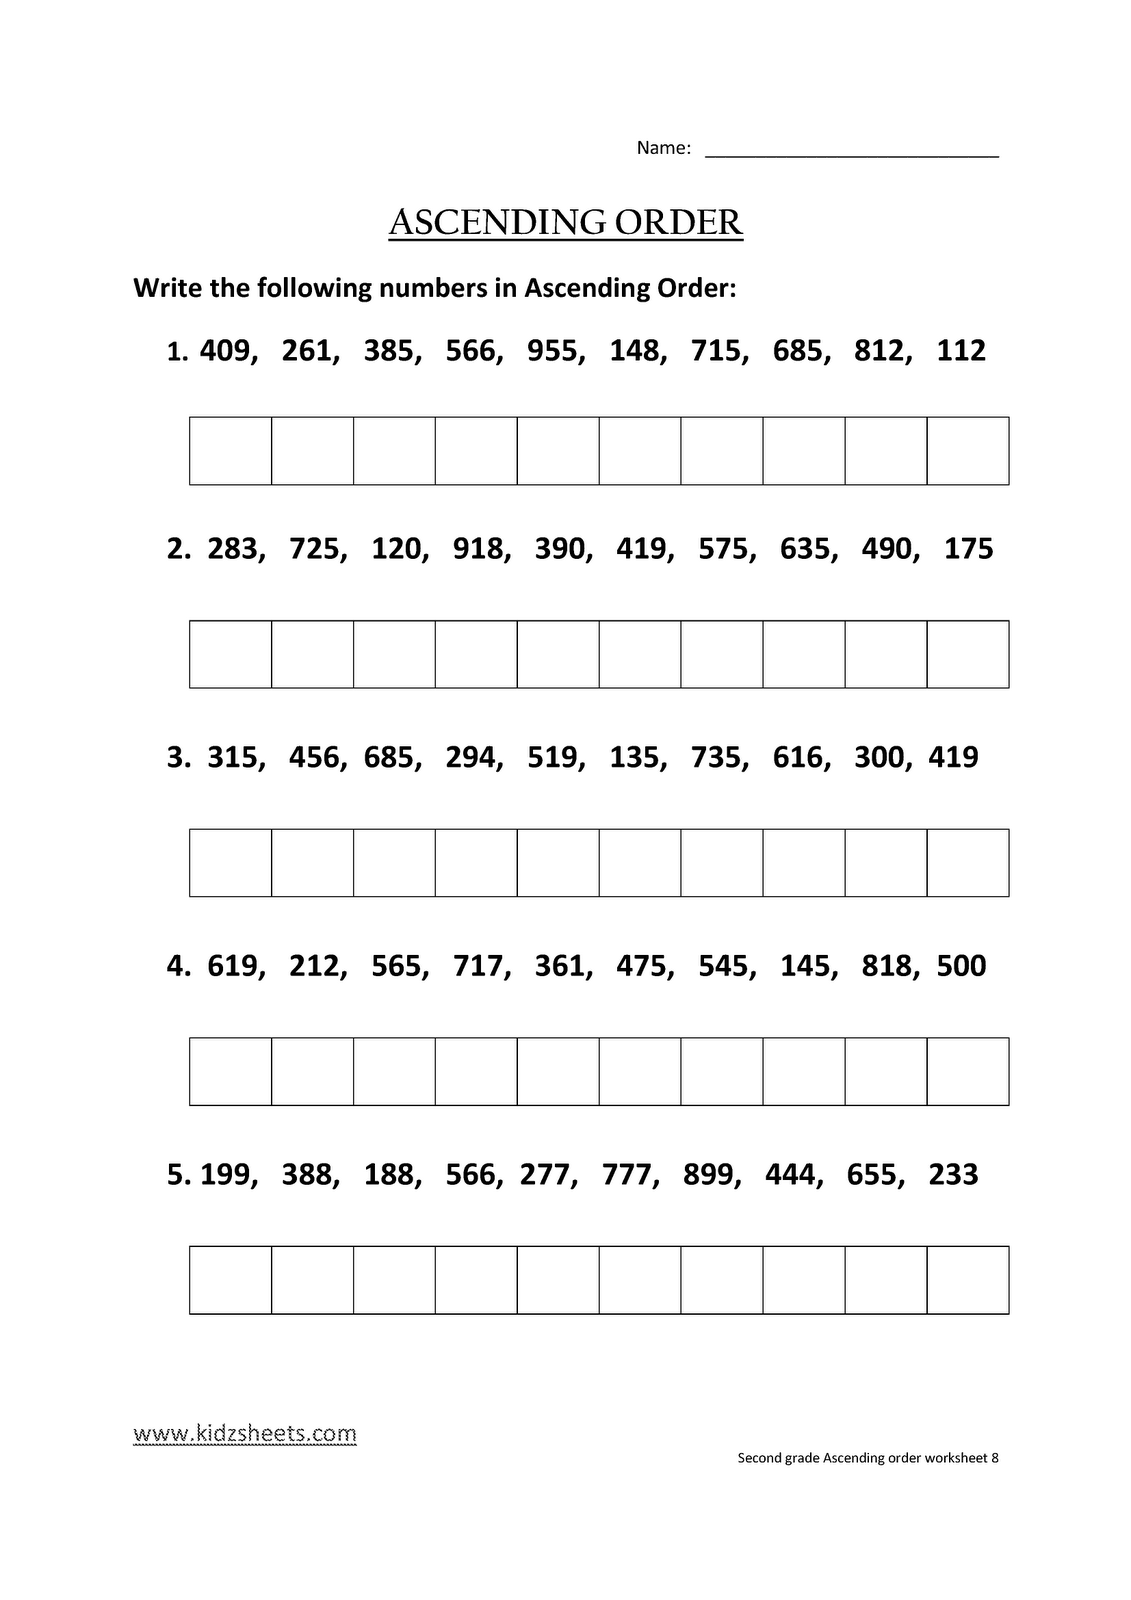 Kidz Worksheets Second Grade Ascending Order Worksheet8